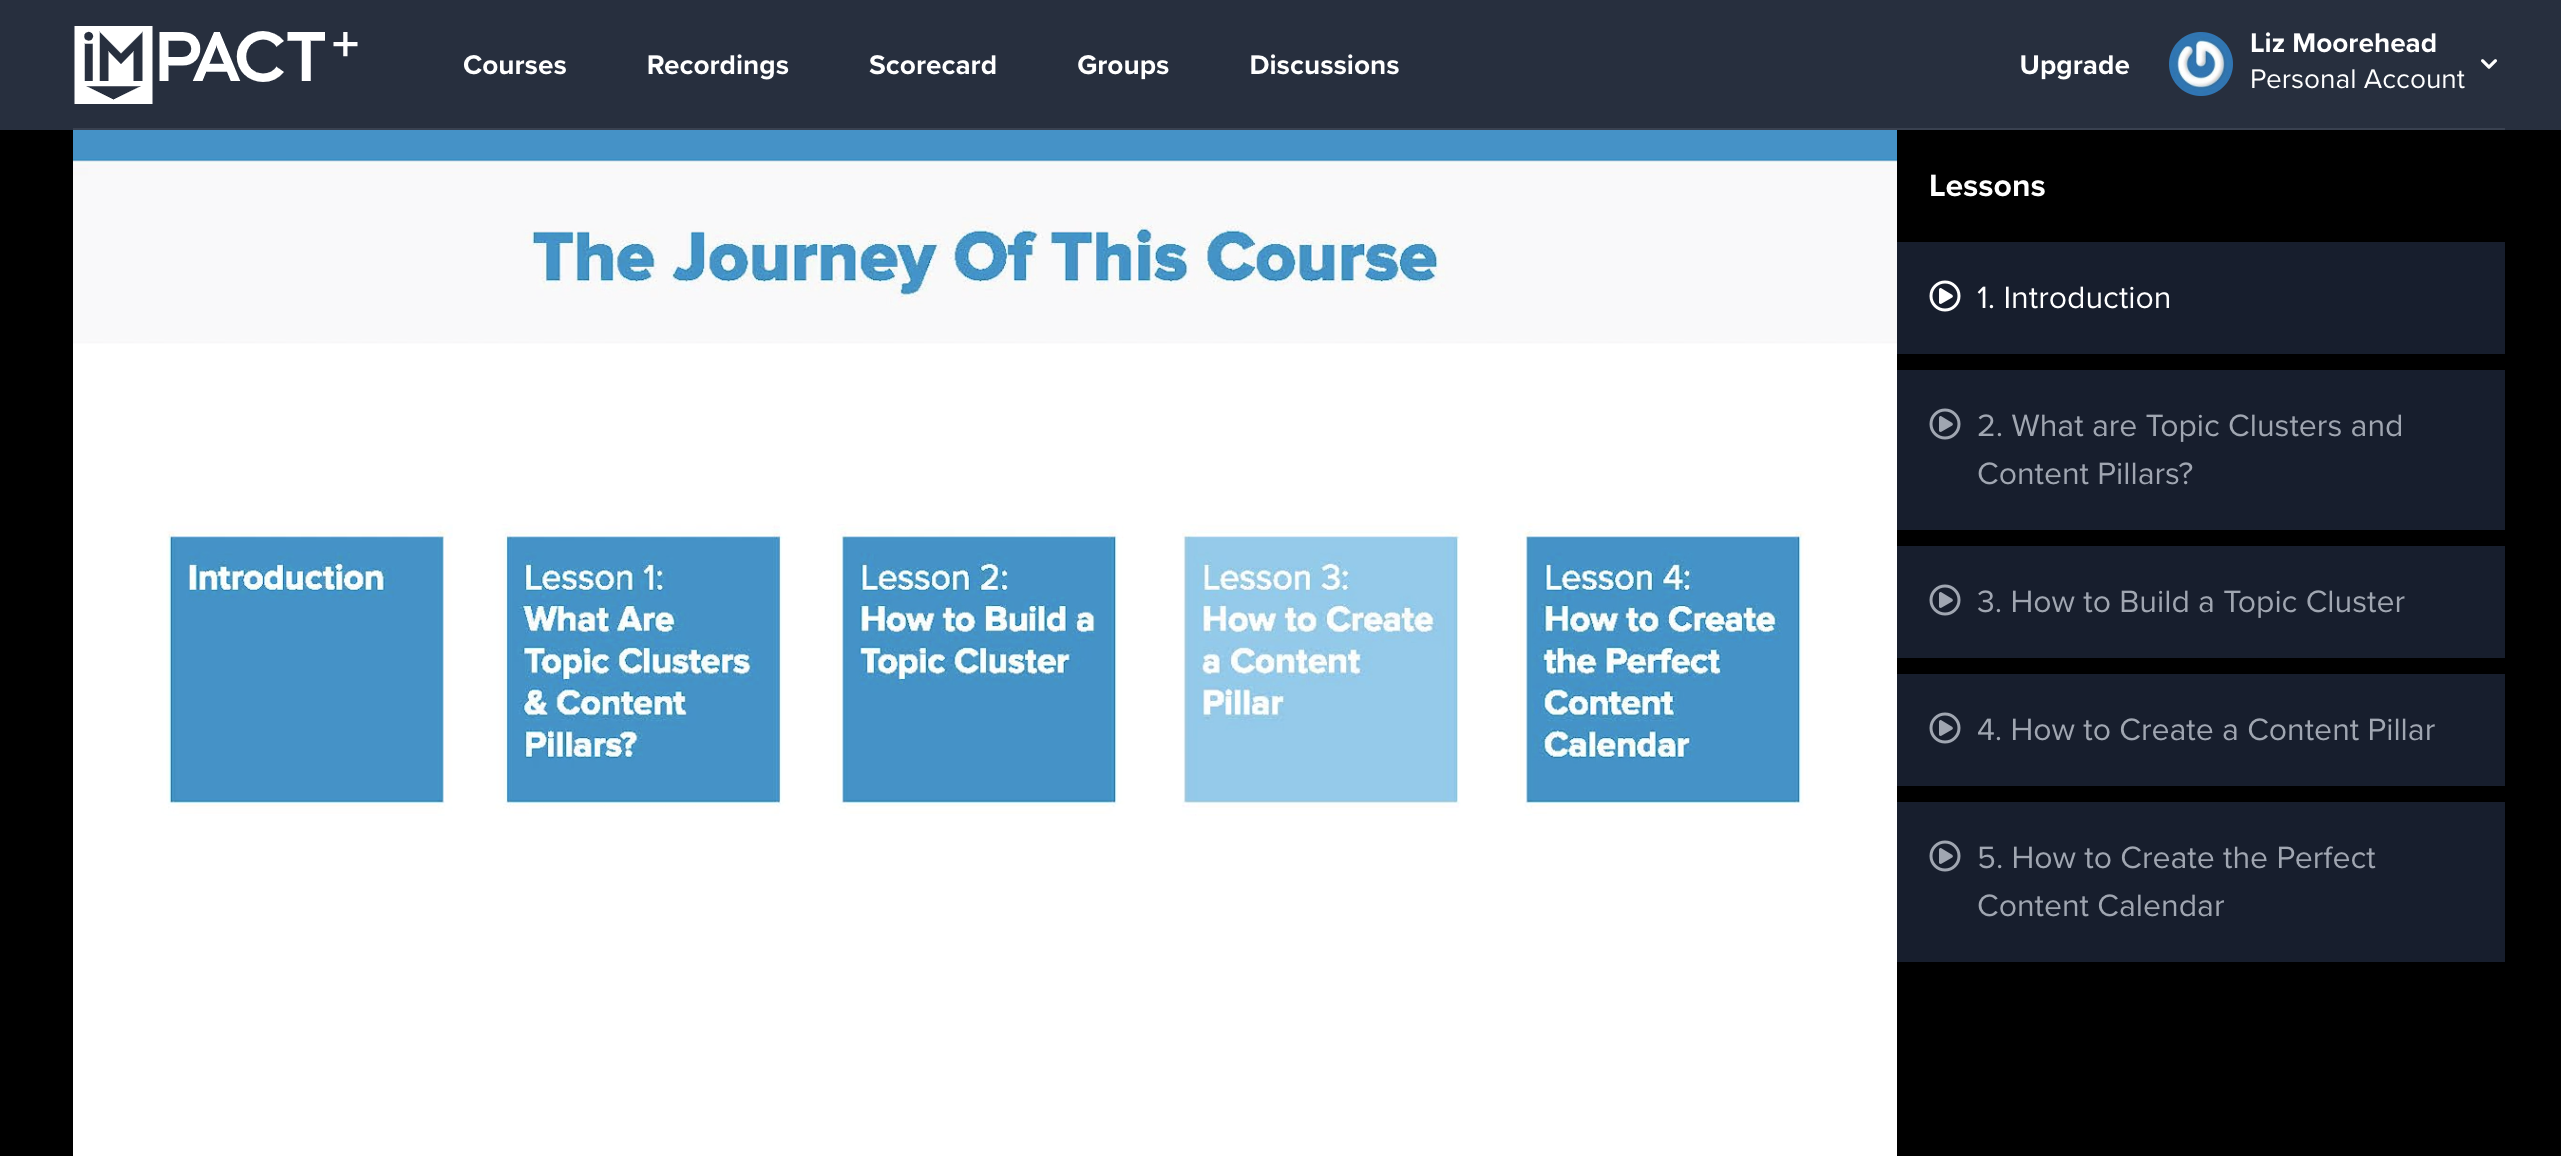 Best content manager training resources for digital marketing in 2020